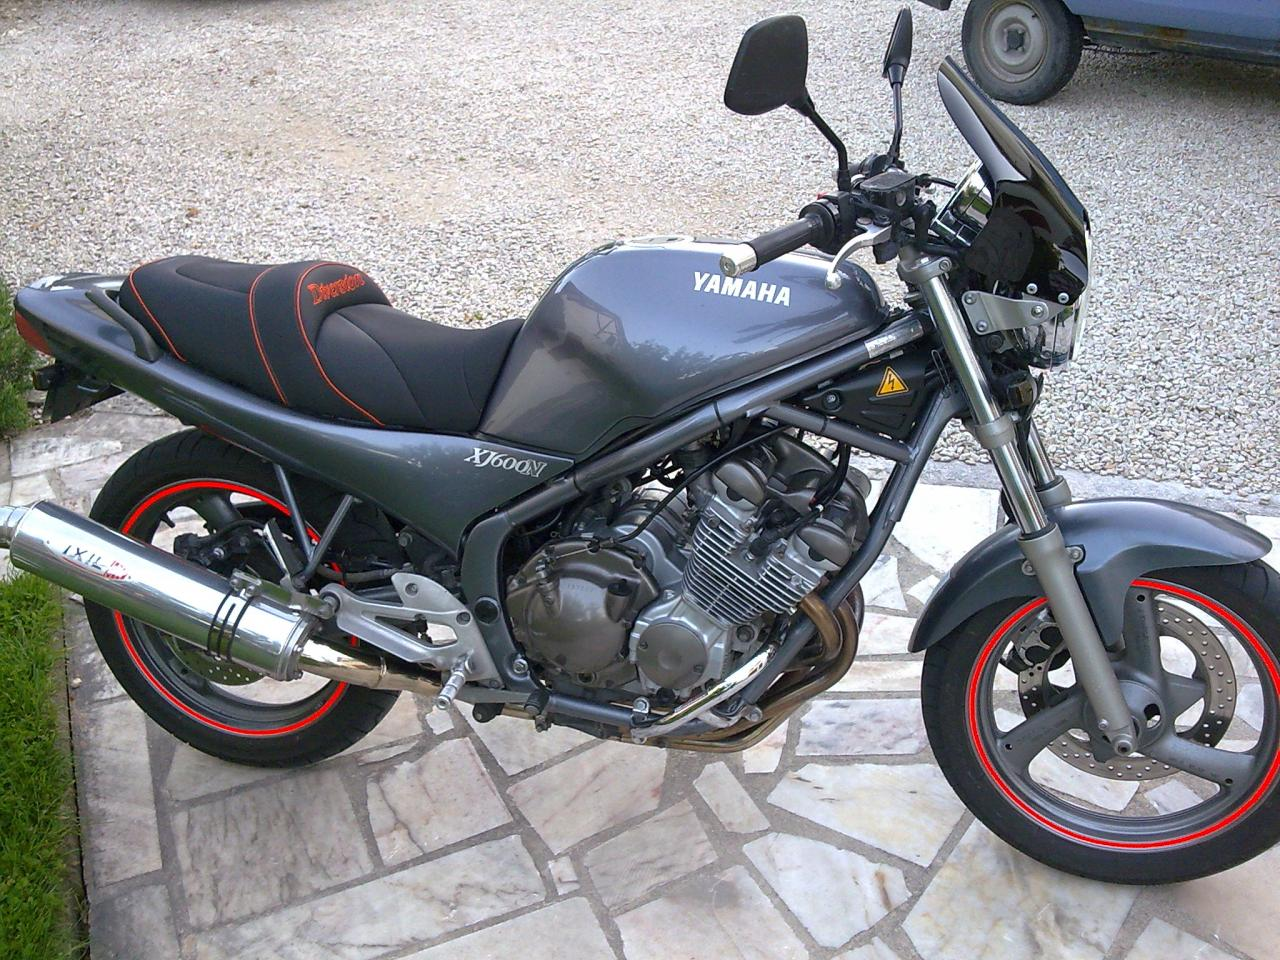 1996 Yamaha XJ 600 N specifications and pictures